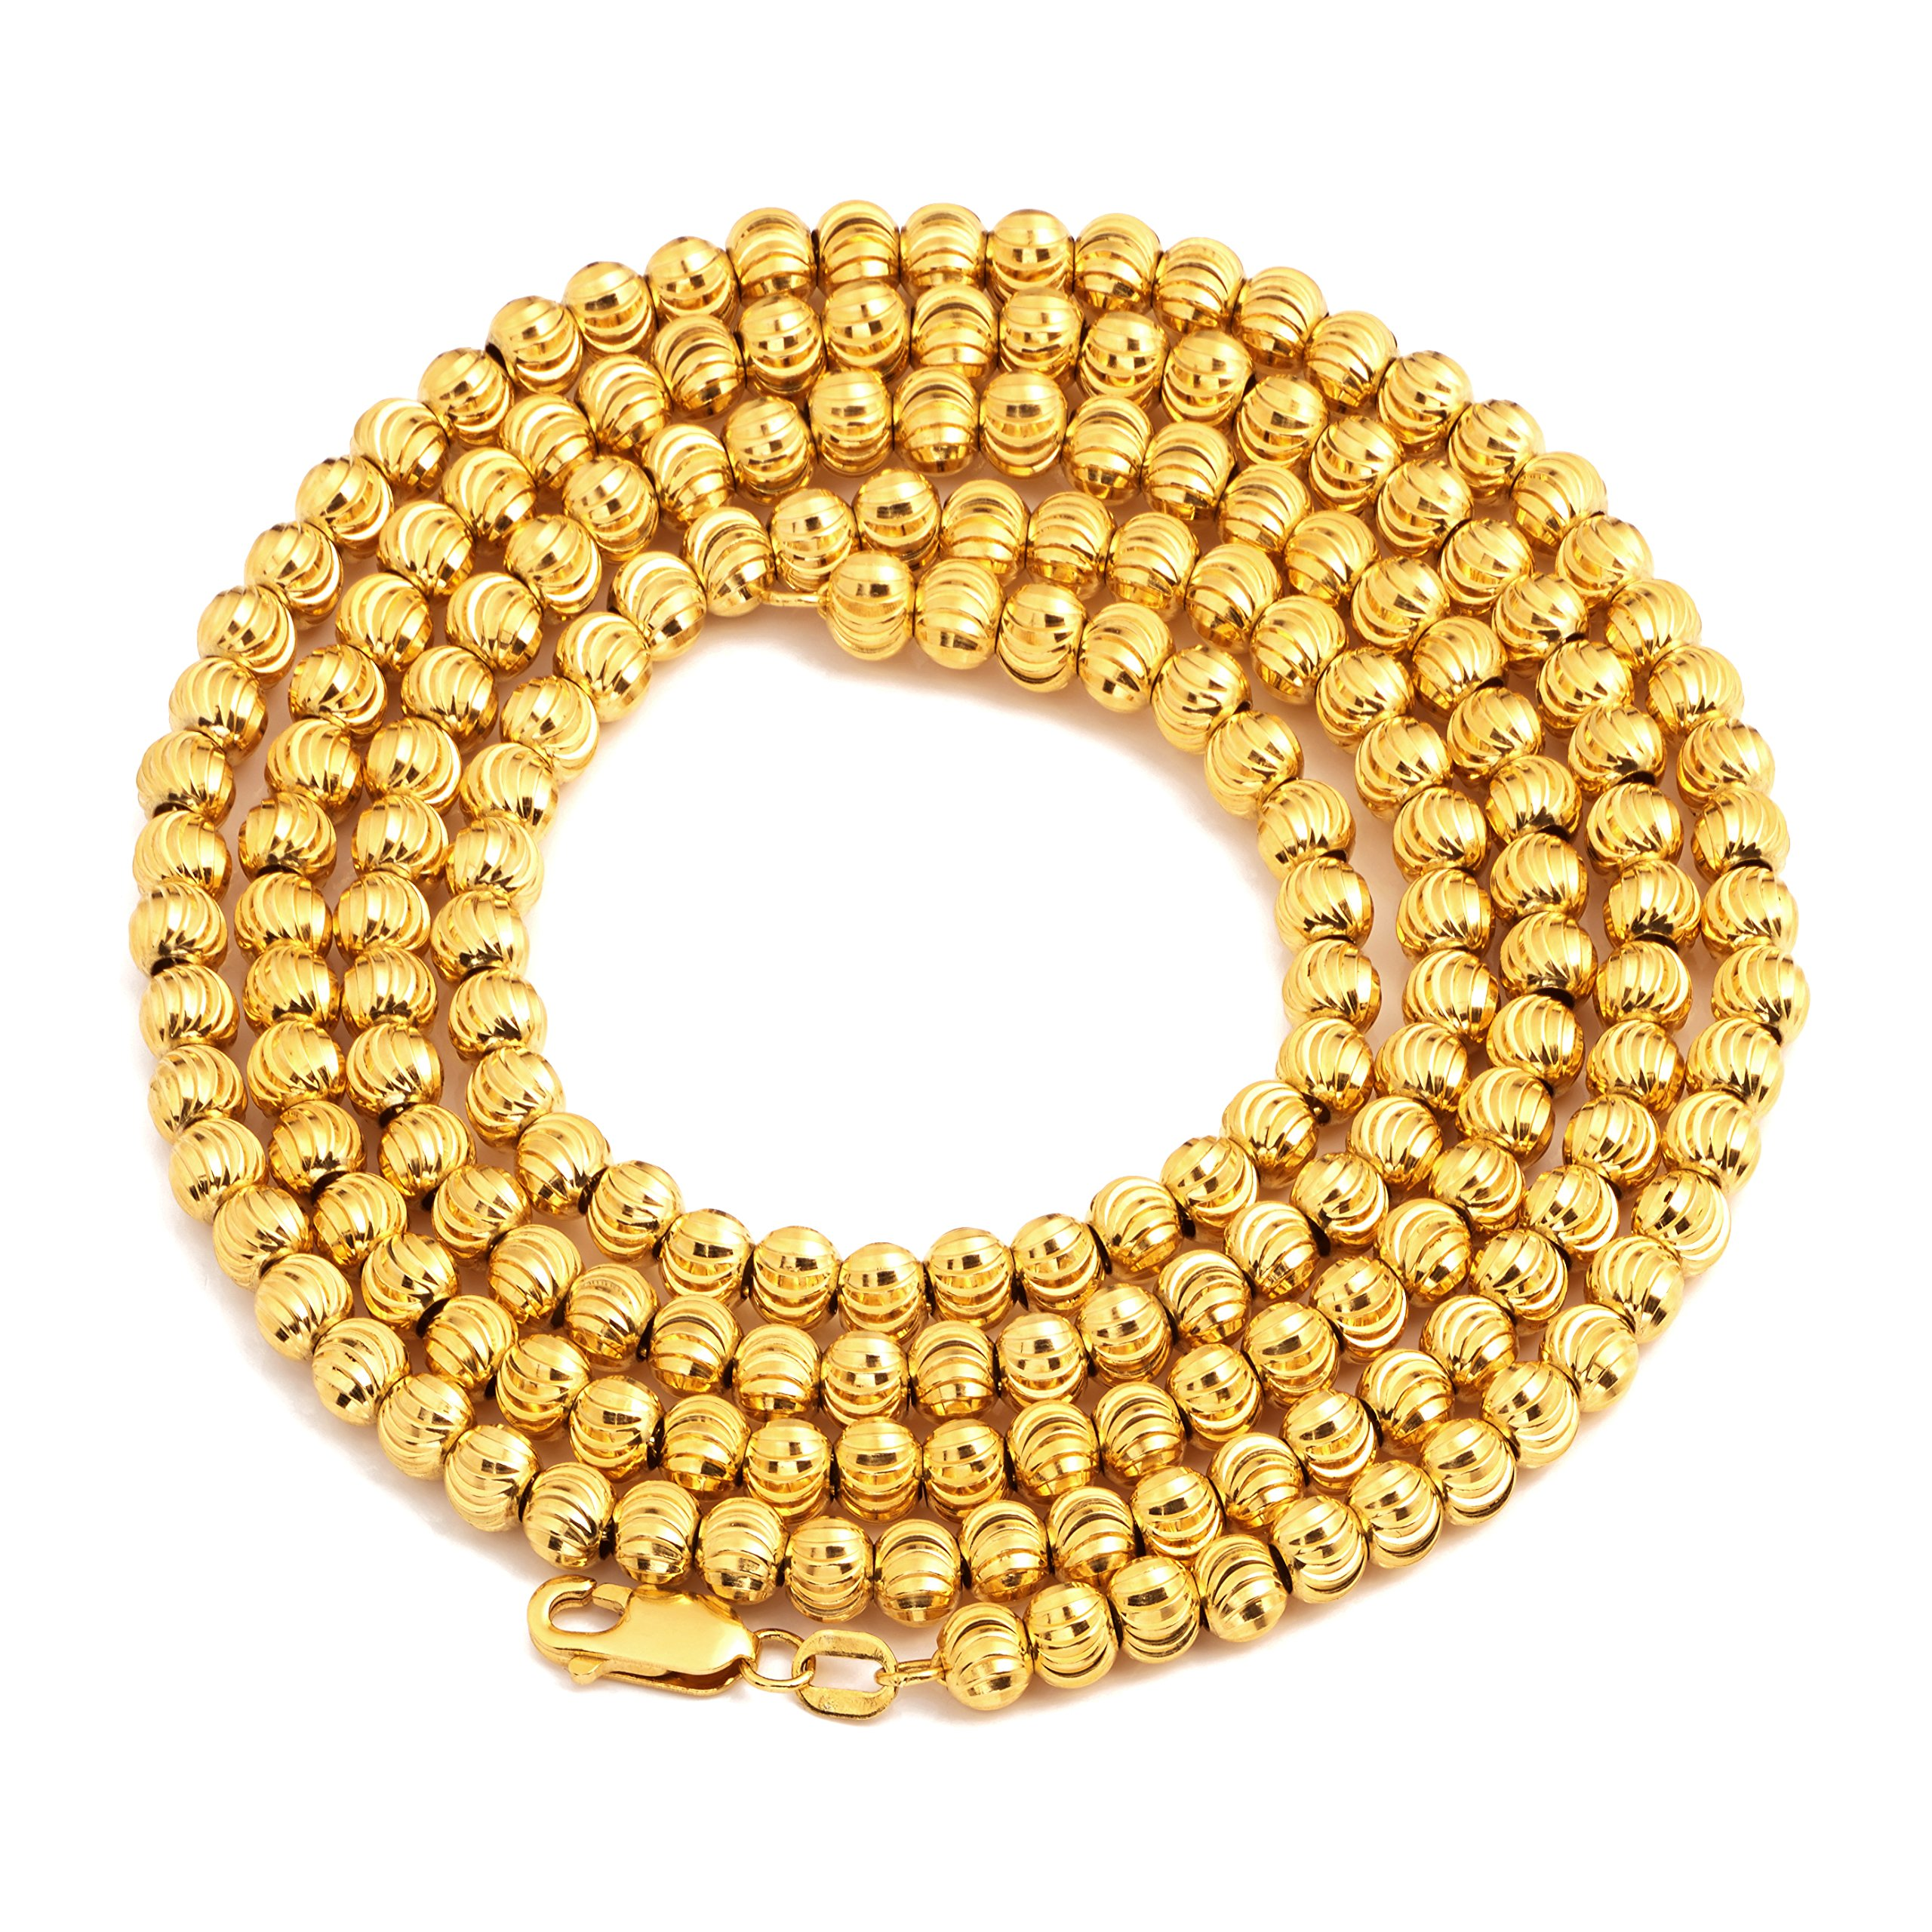 LoveBling 10K Yellow Gold 6mm Italian Moon Cut Bead Chain Necklace with Lobster Lock (24'')